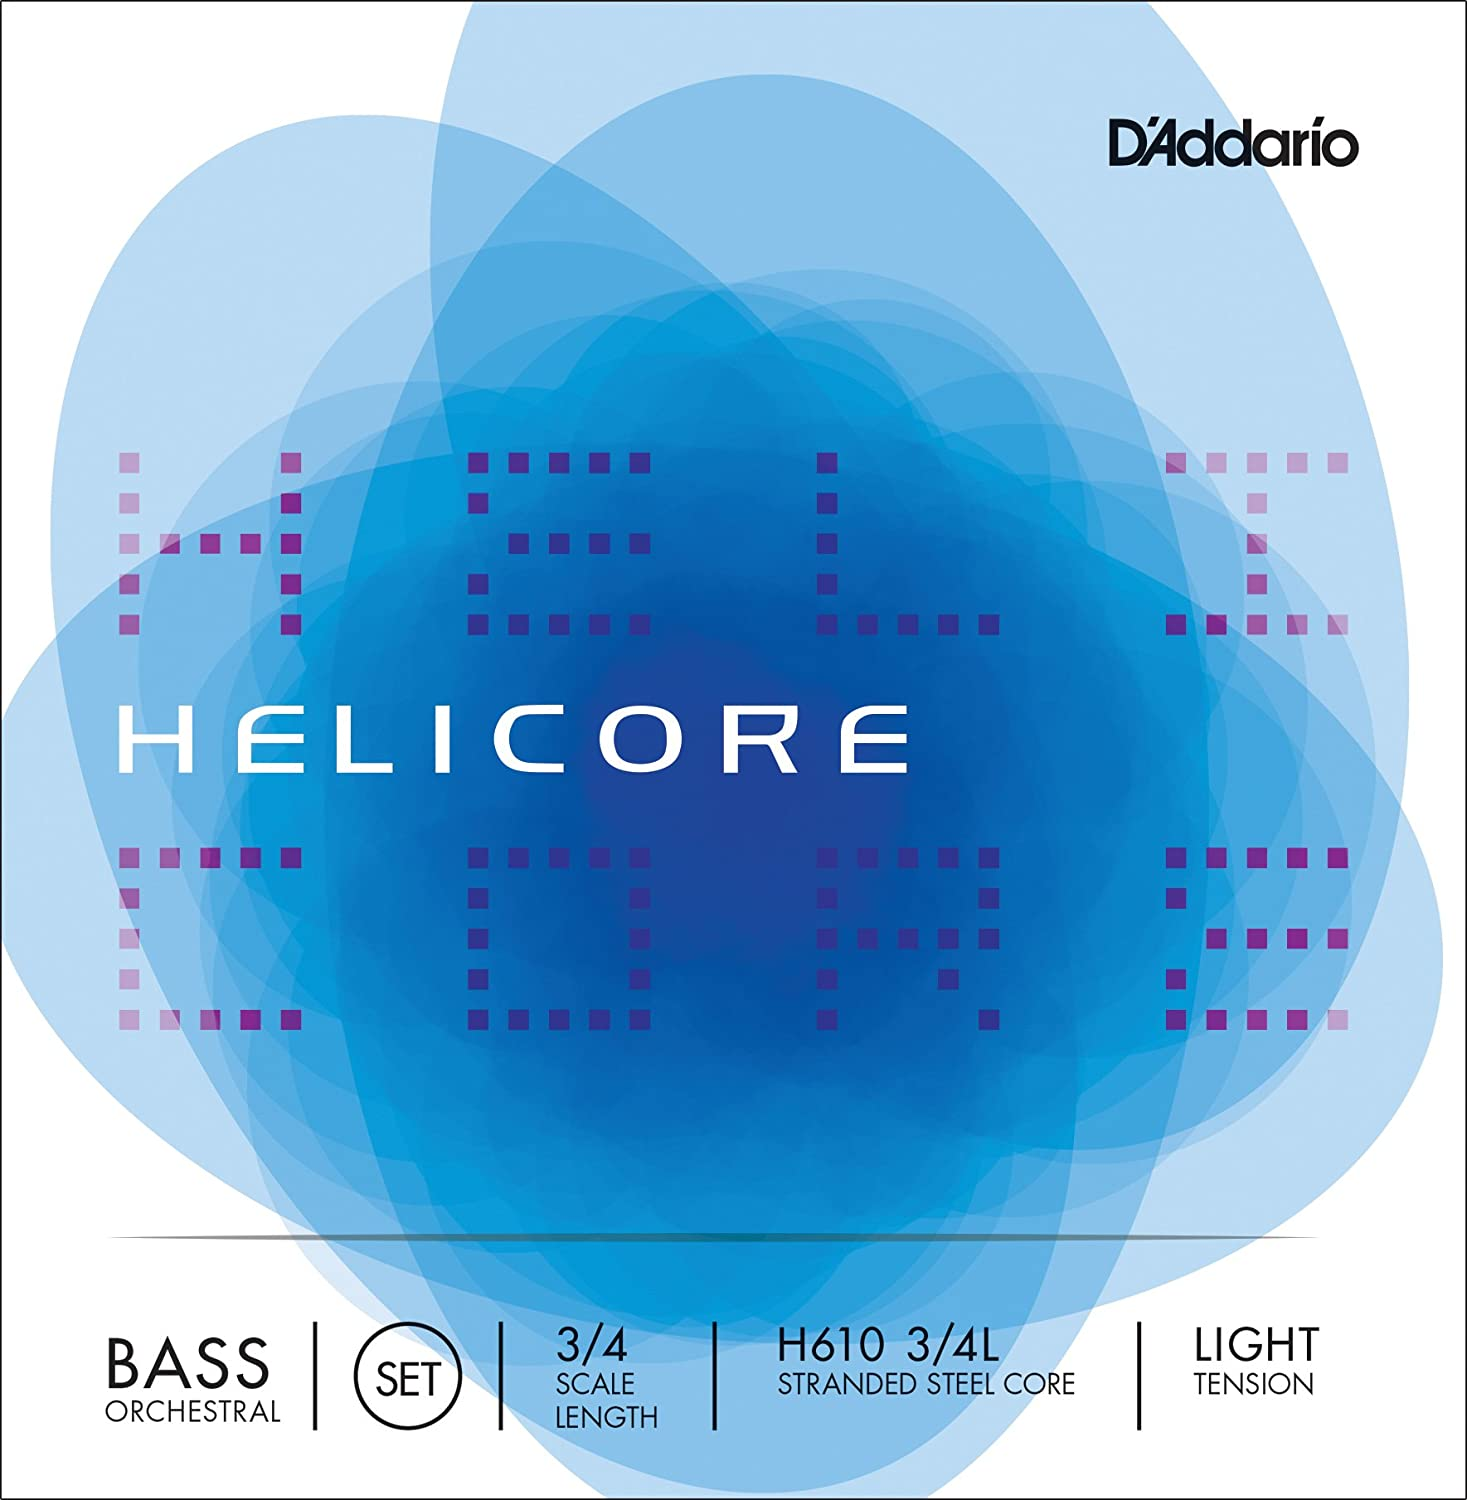 D'Addario Helicore Orchestral Bass String Set, 3/4 Scale, Heavy Tension D' Addario H610 3/4H